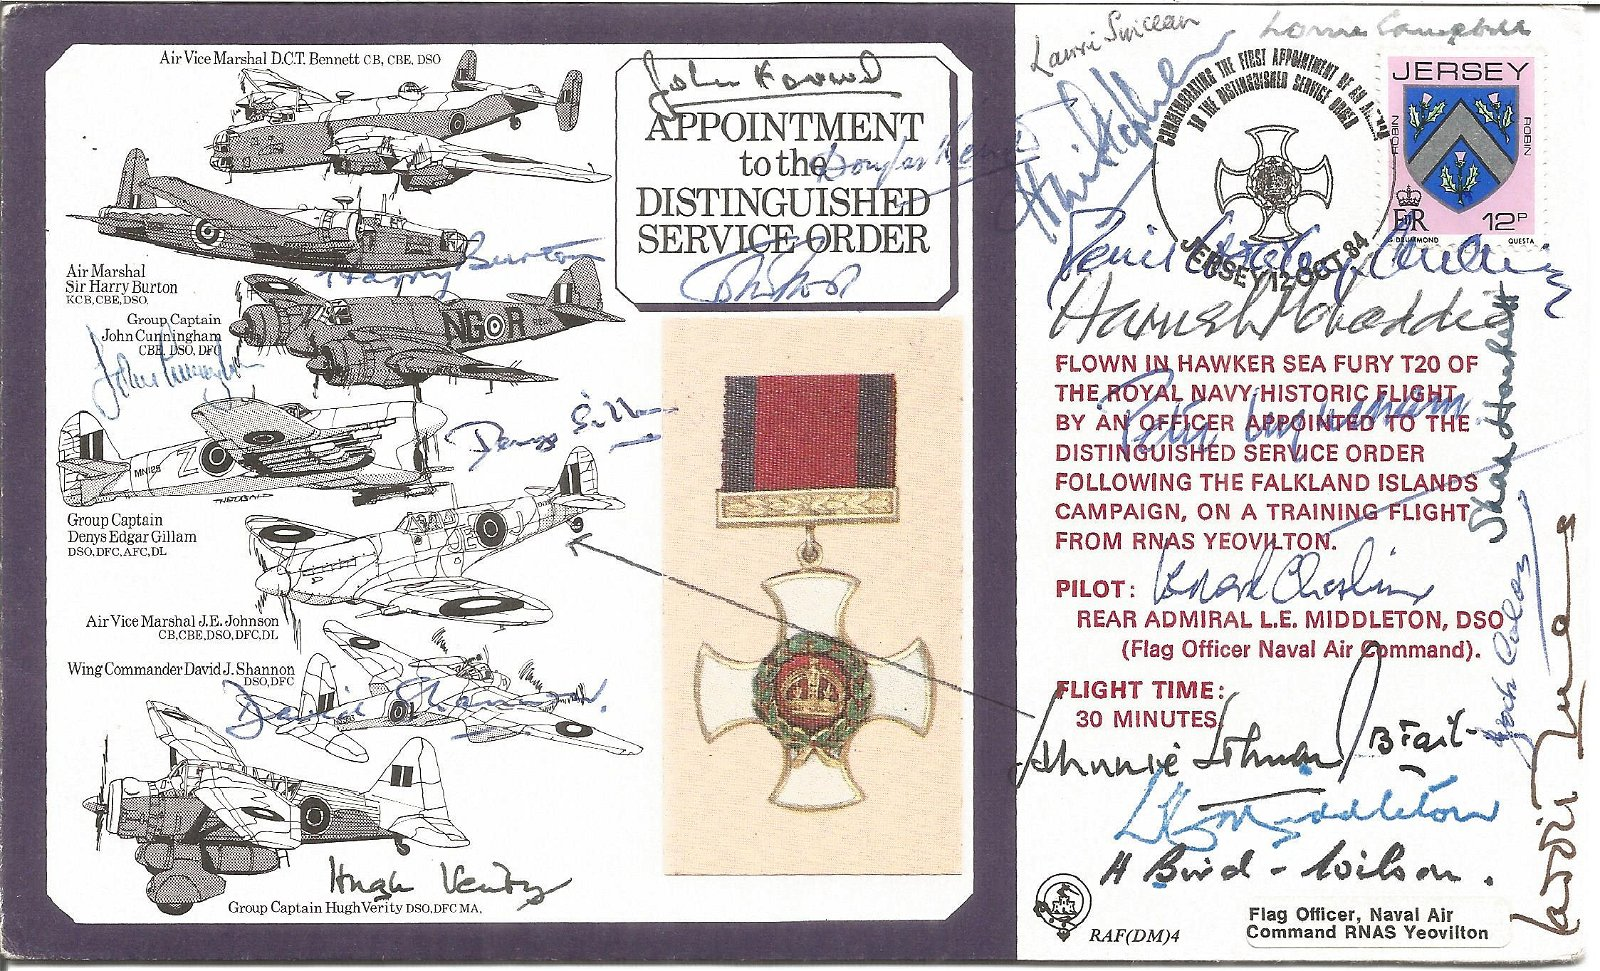 20 WW2 medal winners signed Appointment to the